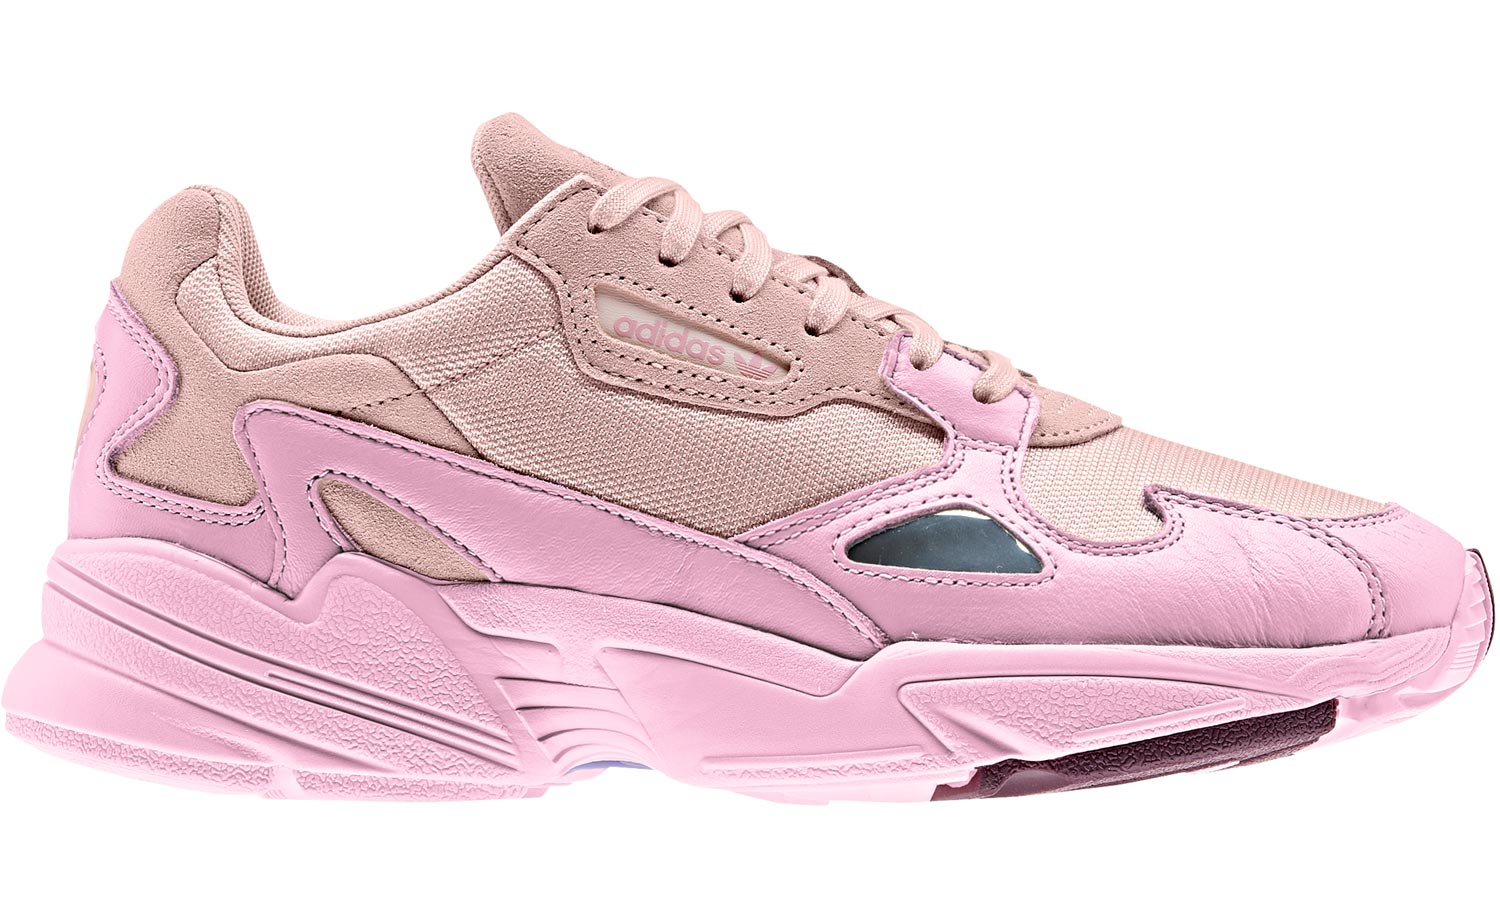 adidas Falcon W - Sneakers Low at Stylefile